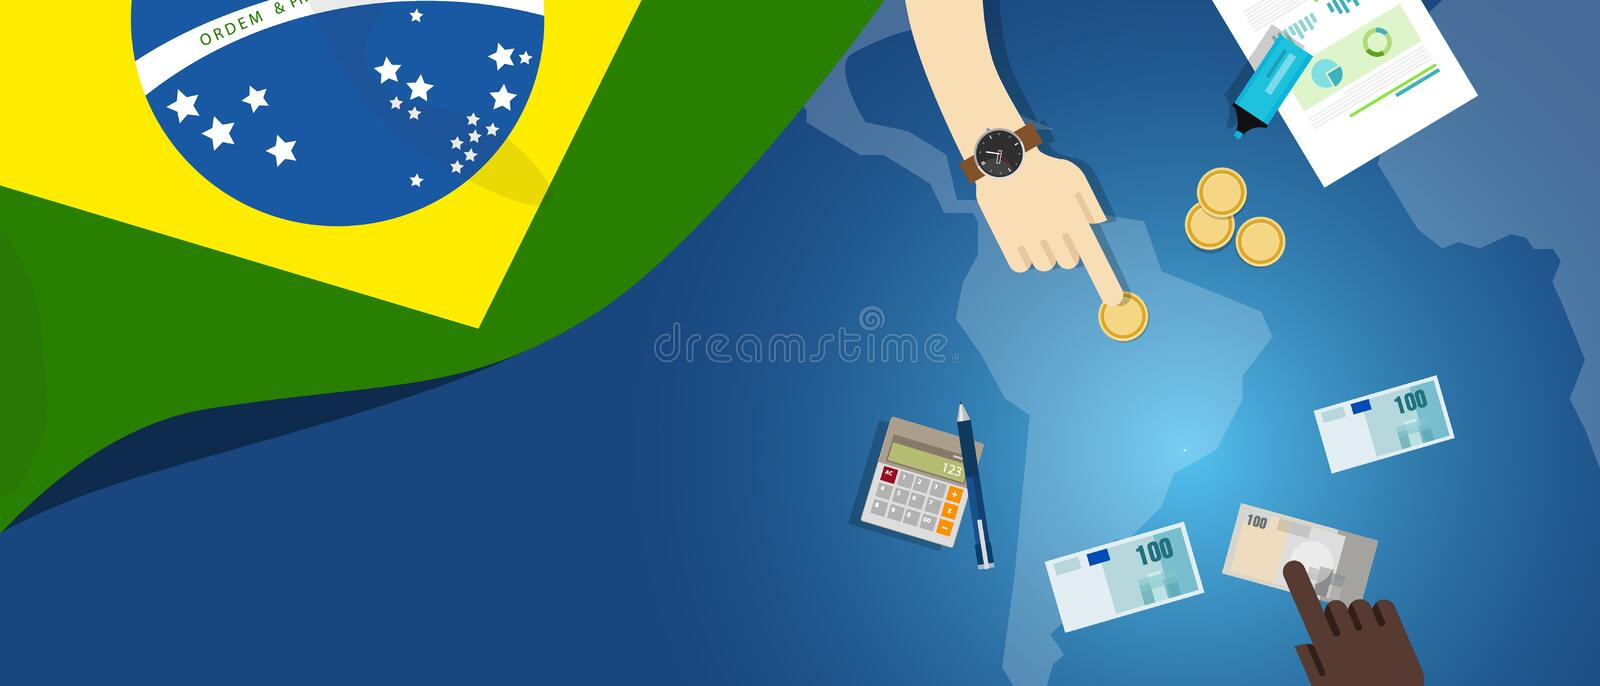 Brazil fiscal money trade concept illustration of financial banking budget with flag map and currency. Brazil economy fiscal money trade concept illustration of vector illustration